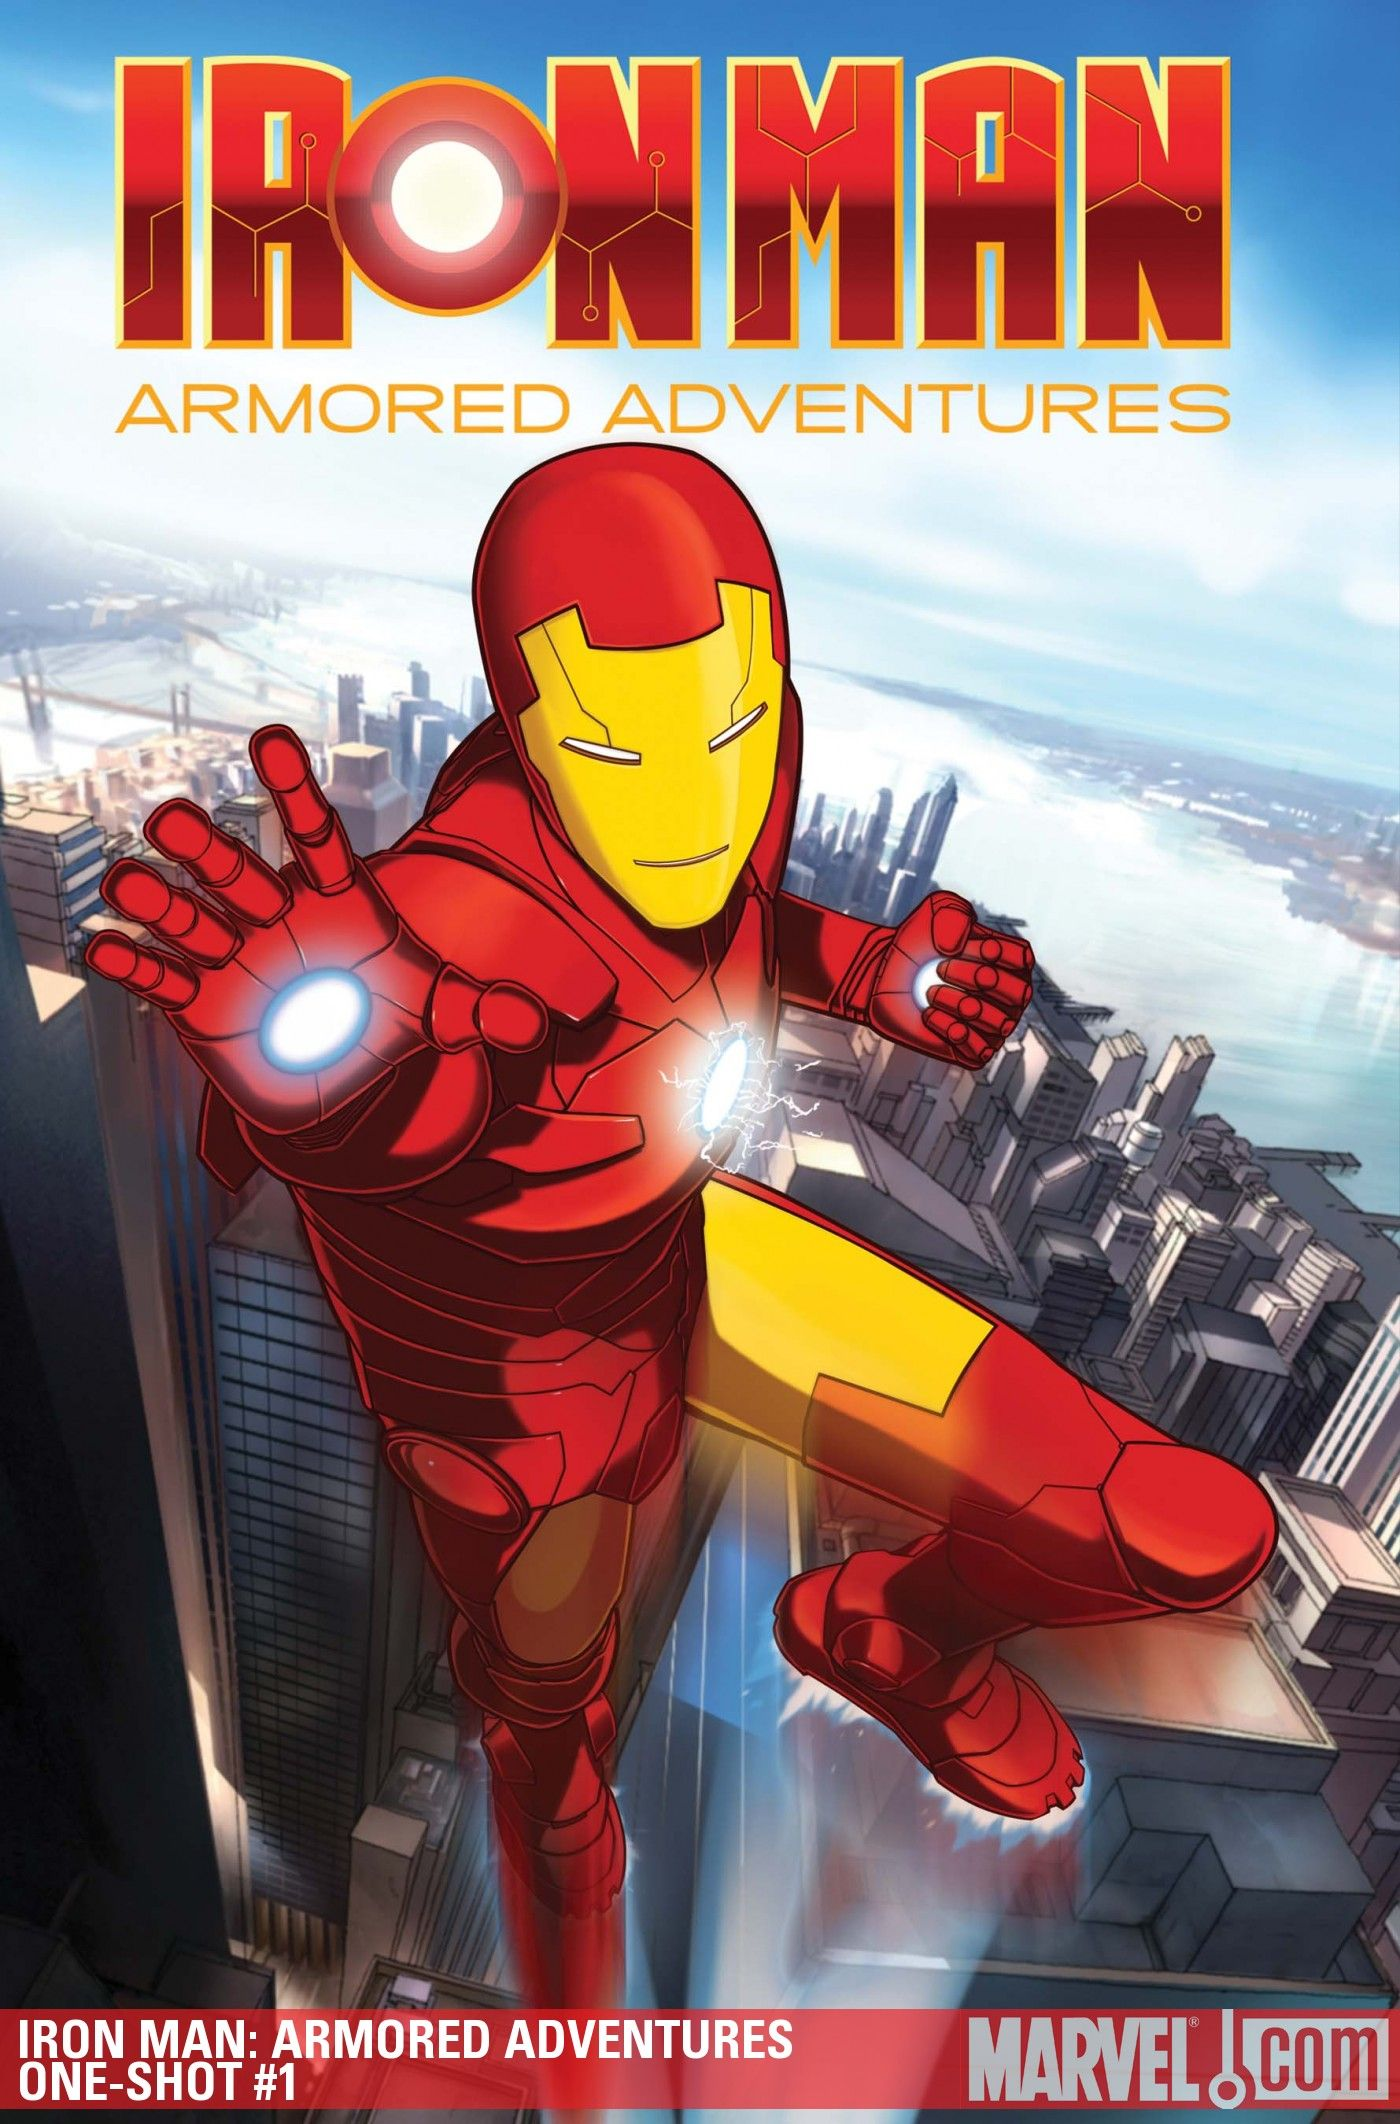 Iron Man Armored Adventures. Ok, it's a TV show and not a